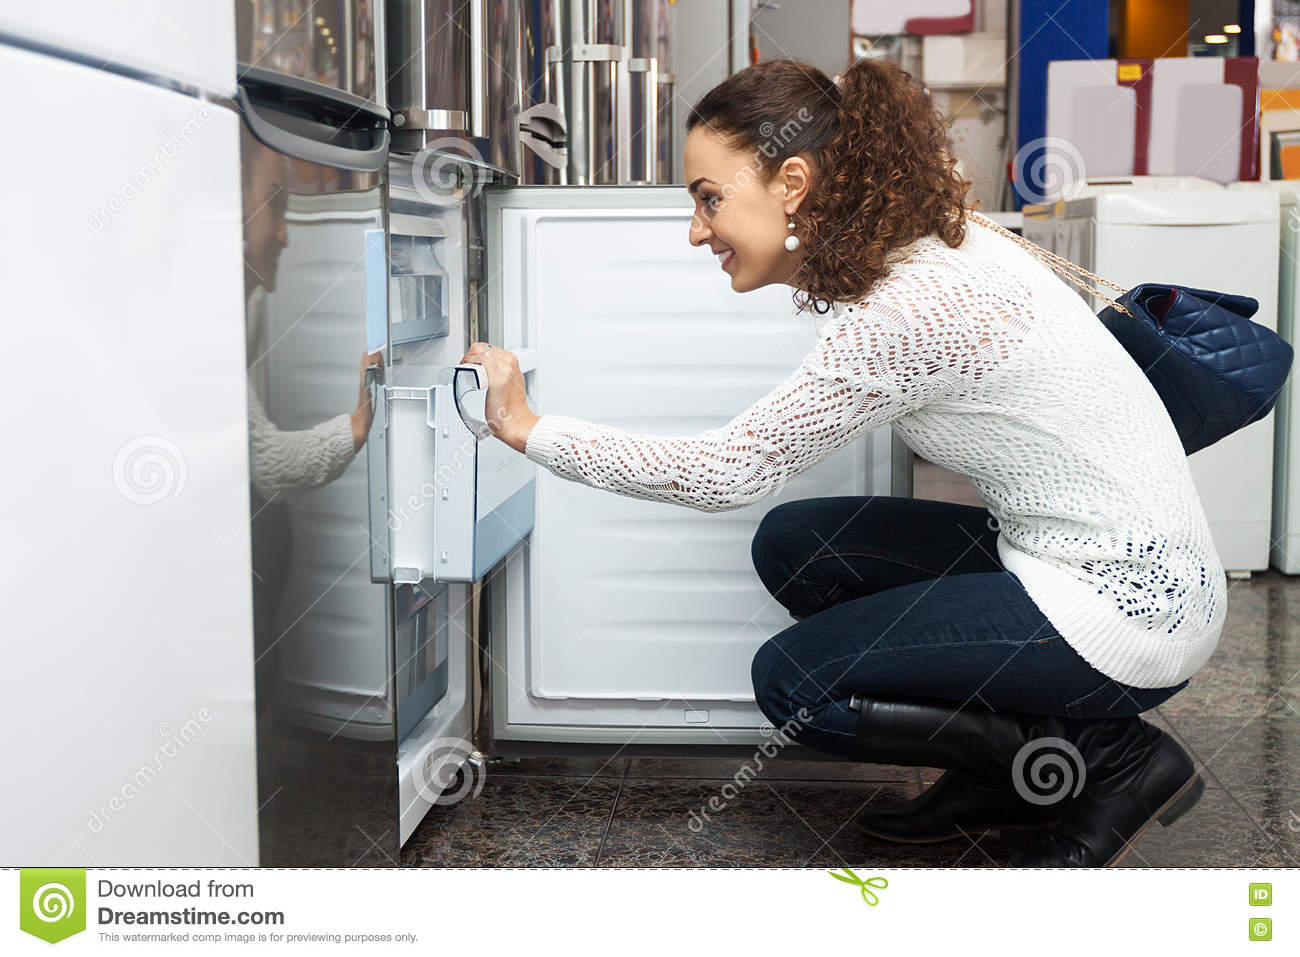 Young woman selecting domestic refrigerator